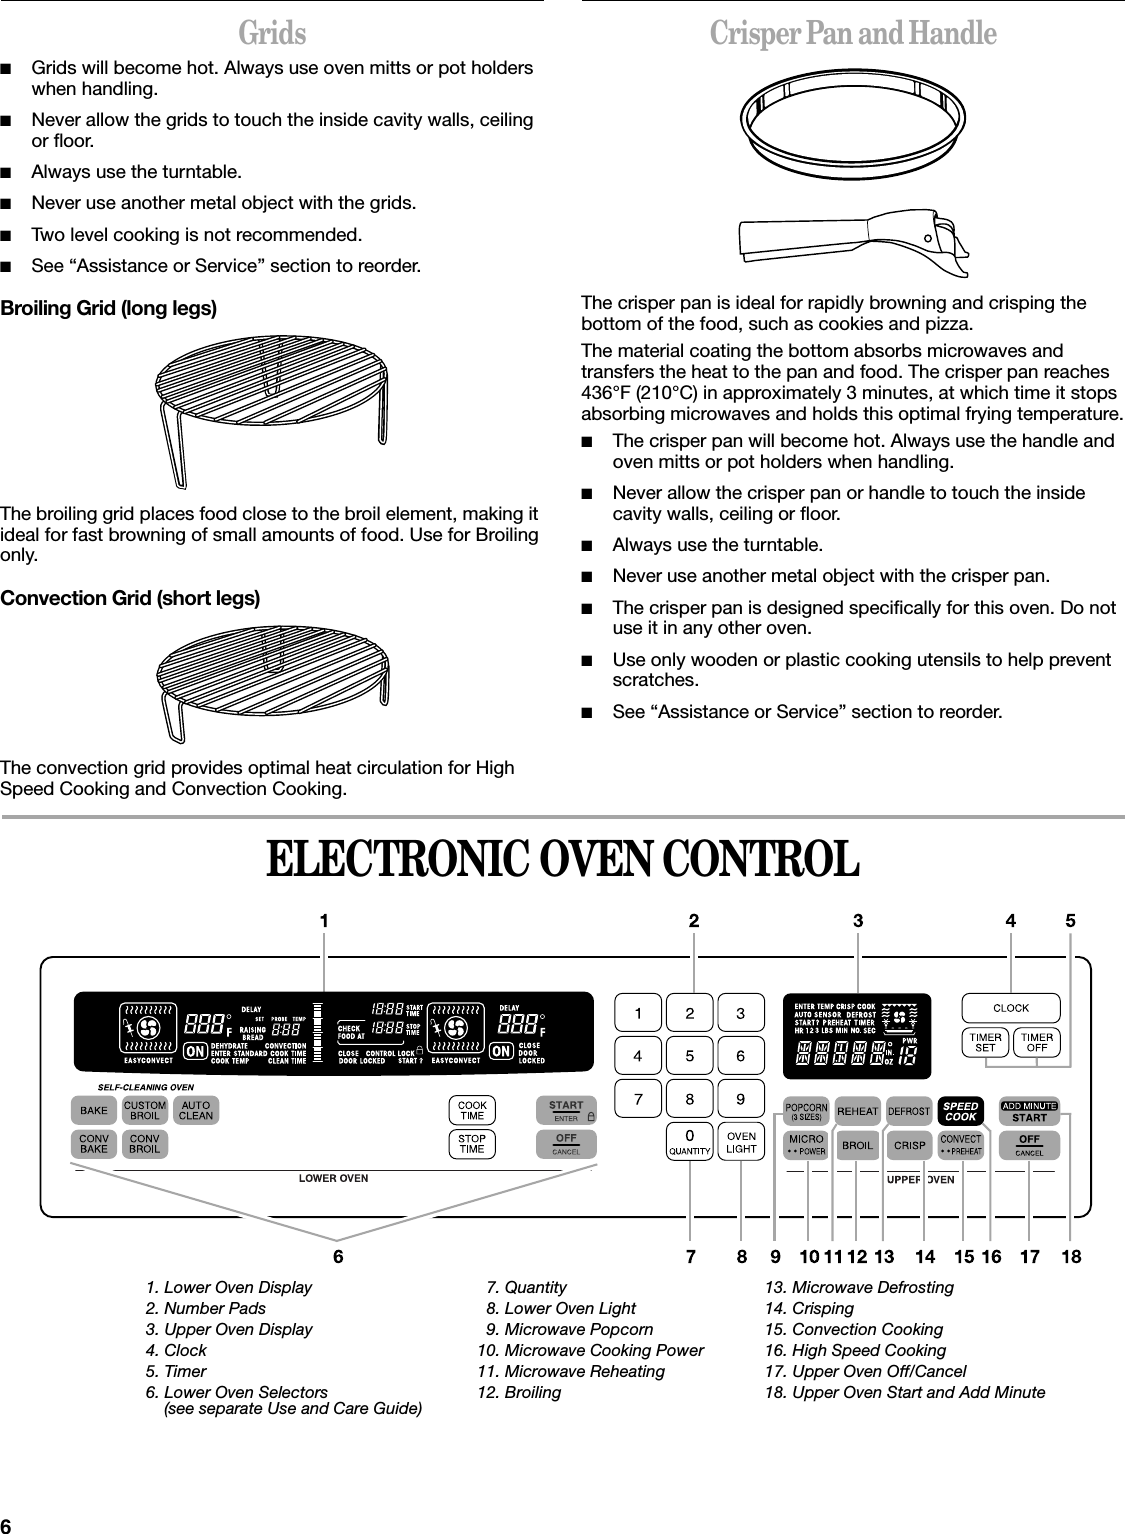 """6Grids■Grids will become hot. Always use oven mitts or pot holders when handling.■Never allow the grids to touch the inside cavity walls, ceiling or floor. ■Always use the turntable. ■Never use another metal object with the grids.■Two level cooking is not recommended.■See """"Assistance or Service"""" section to reorder.Broiling Grid (long legs)The broiling grid places food close to the broil element, making it ideal for fast browning of small amounts of food. Use for Broiling only.Convection Grid (short legs)The convection grid provides optimal heat circulation for High Speed Cooking and Convection Cooking.Crisper Pan and HandleThe crisper pan is ideal for rapidly browning and crisping the bottom of the food, such as cookies and pizza.The material coating the bottom absorbs microwaves and transfers the heat to the pan and food. The crisper pan reaches 436°F (210°C) in approximately 3 minutes, at which time it stops absorbing microwaves and holds this optimal frying temperature.■The crisper pan will become hot. Always use the handle and oven mitts or pot holders when handling.■Never allow the crisper pan or handle to touch the inside cavity walls, ceiling or floor. ■Always use the turntable.■Never use another metal object with the crisper pan.■The crisper pan is designed specifically for this oven. Do not use it in any other oven.■Use only wooden or plastic cooking utensils to help prevent scratches.■See """"Assistance or Service"""" section to reorder.ELECTRONIC OVEN CONTROL1. Lower Oven Display2. Number Pads3. Upper Oven Display4. Clock5. Timer6. Lower Oven Selectors(see separate Use and Care Guide)  7. Quantity  8. Lower Oven Light  9. Microwave Popcorn10. Microwave Cooking Power11. Microwave Reheating12. Broiling13. Microwave Defrosting14. Crisping15. Convection Cooking16. High Speed Cooking17. Upper Oven Off/Cancel18. Upper Oven Start and Add Minute"""